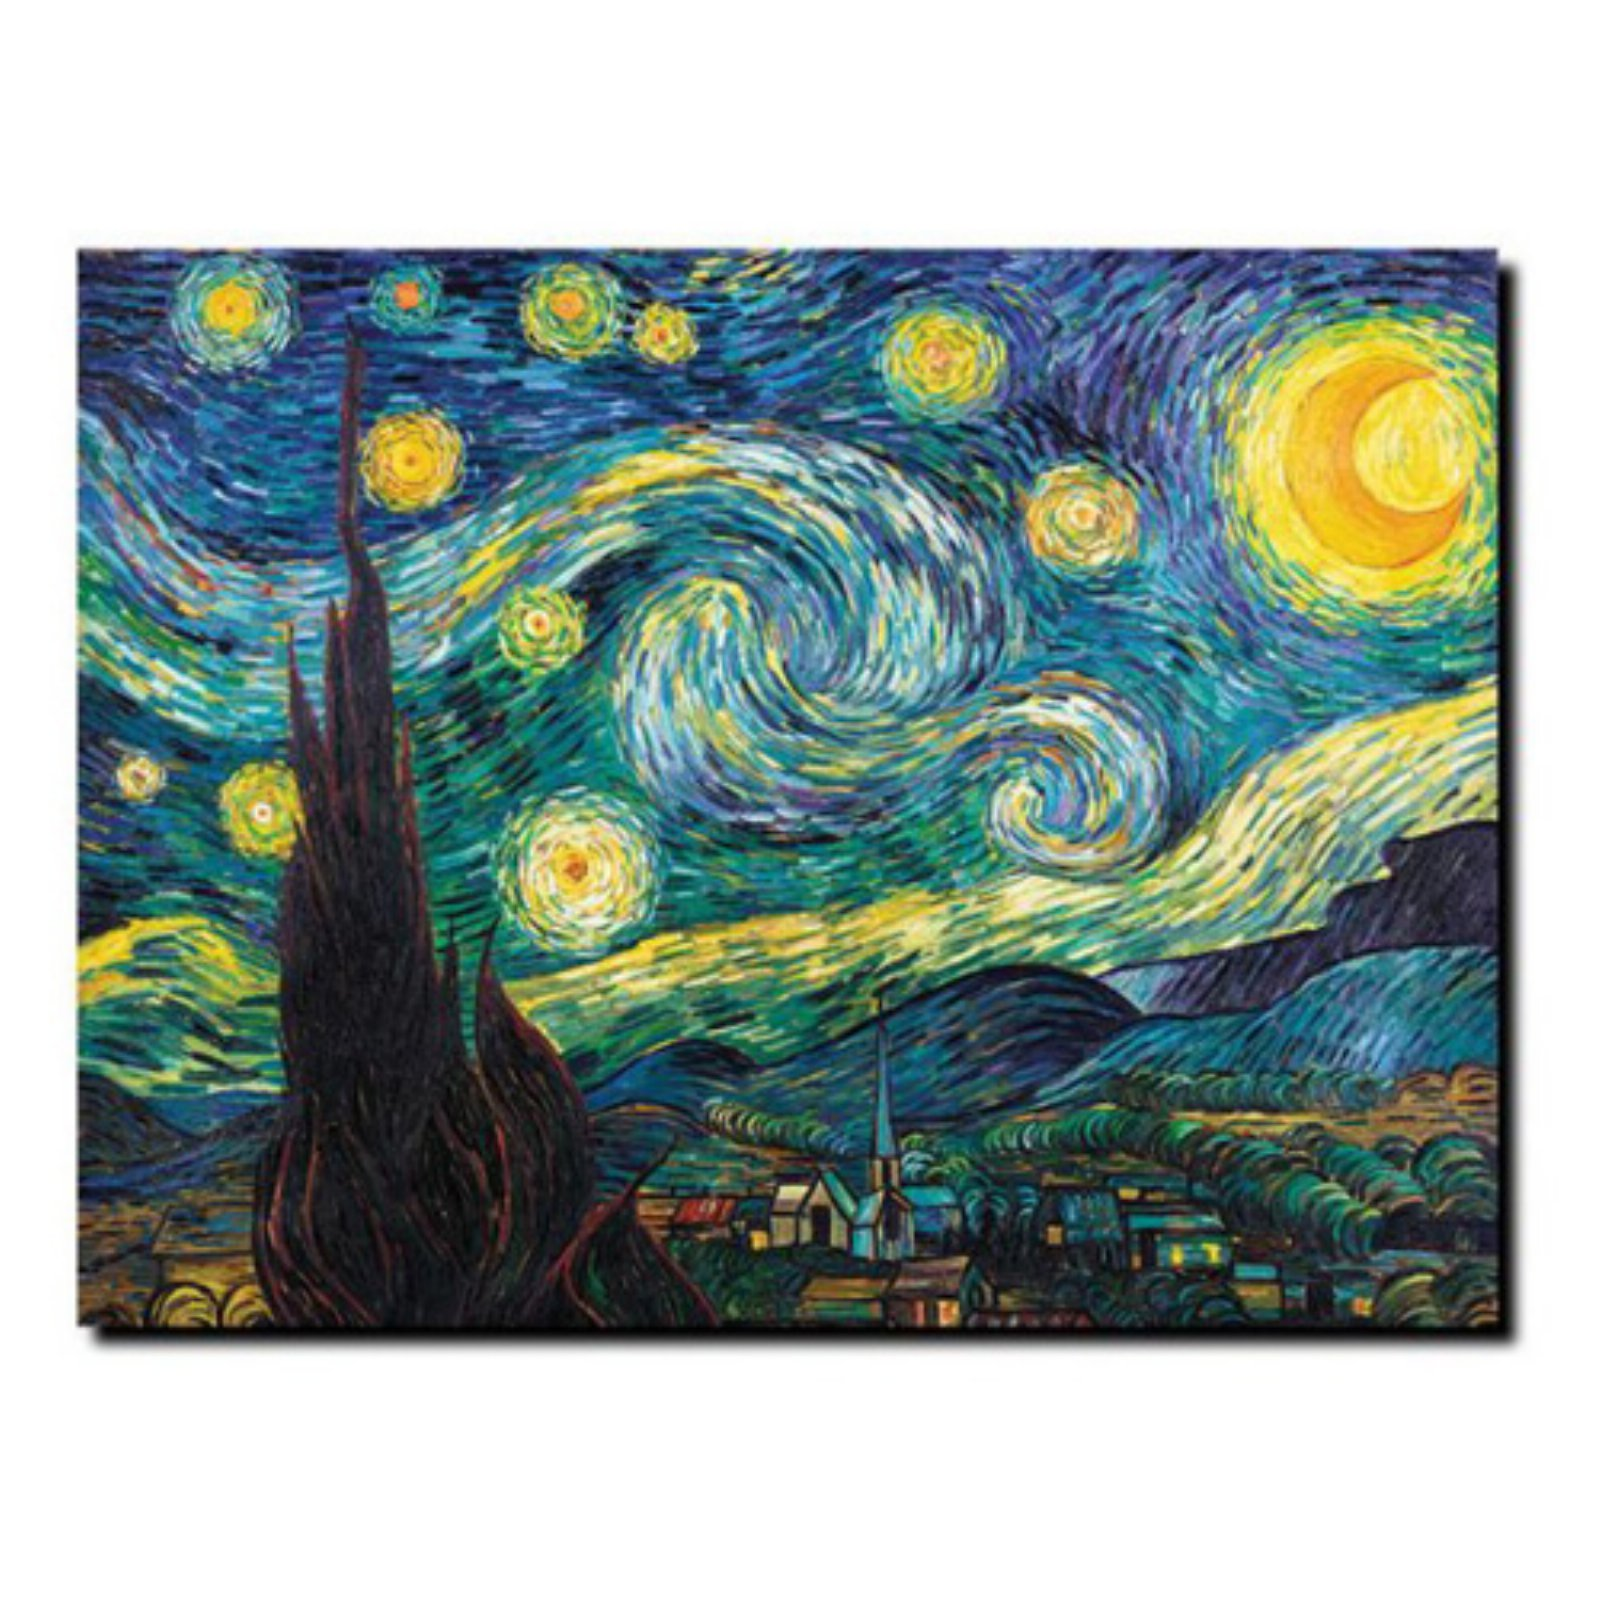 Starry Night Wall Art By Vincent Van Gogh Starry Night Van Gogh Vincent Van Gogh Van Gogh